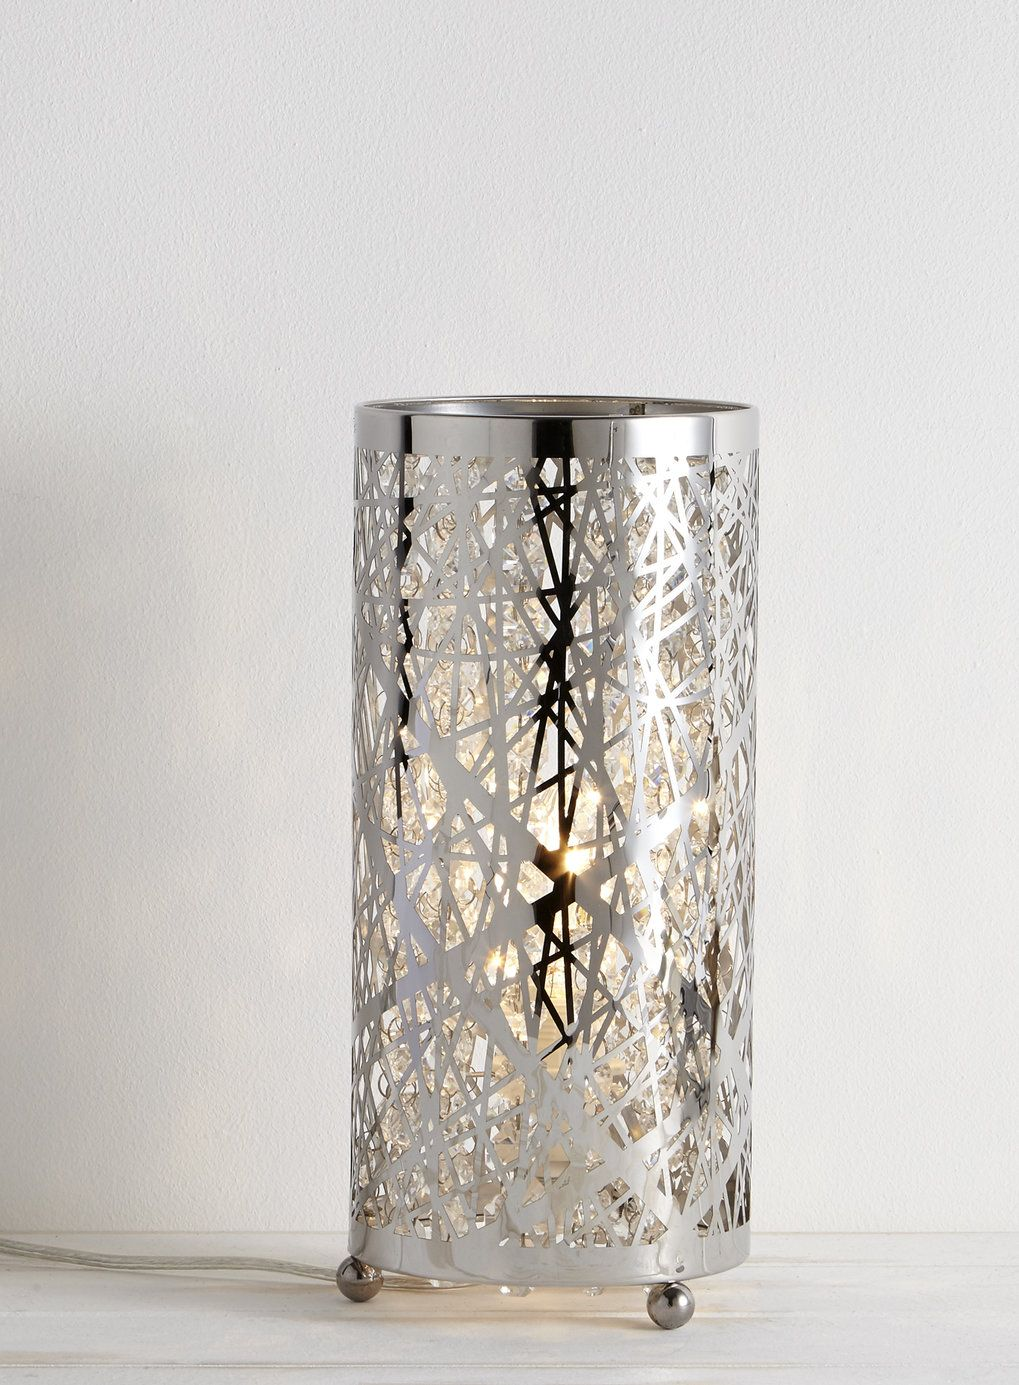 Photo 2 of jenna table lamp lamps pinterest bhs sitting photo 2 of jenna table lamp mozeypictures Image collections